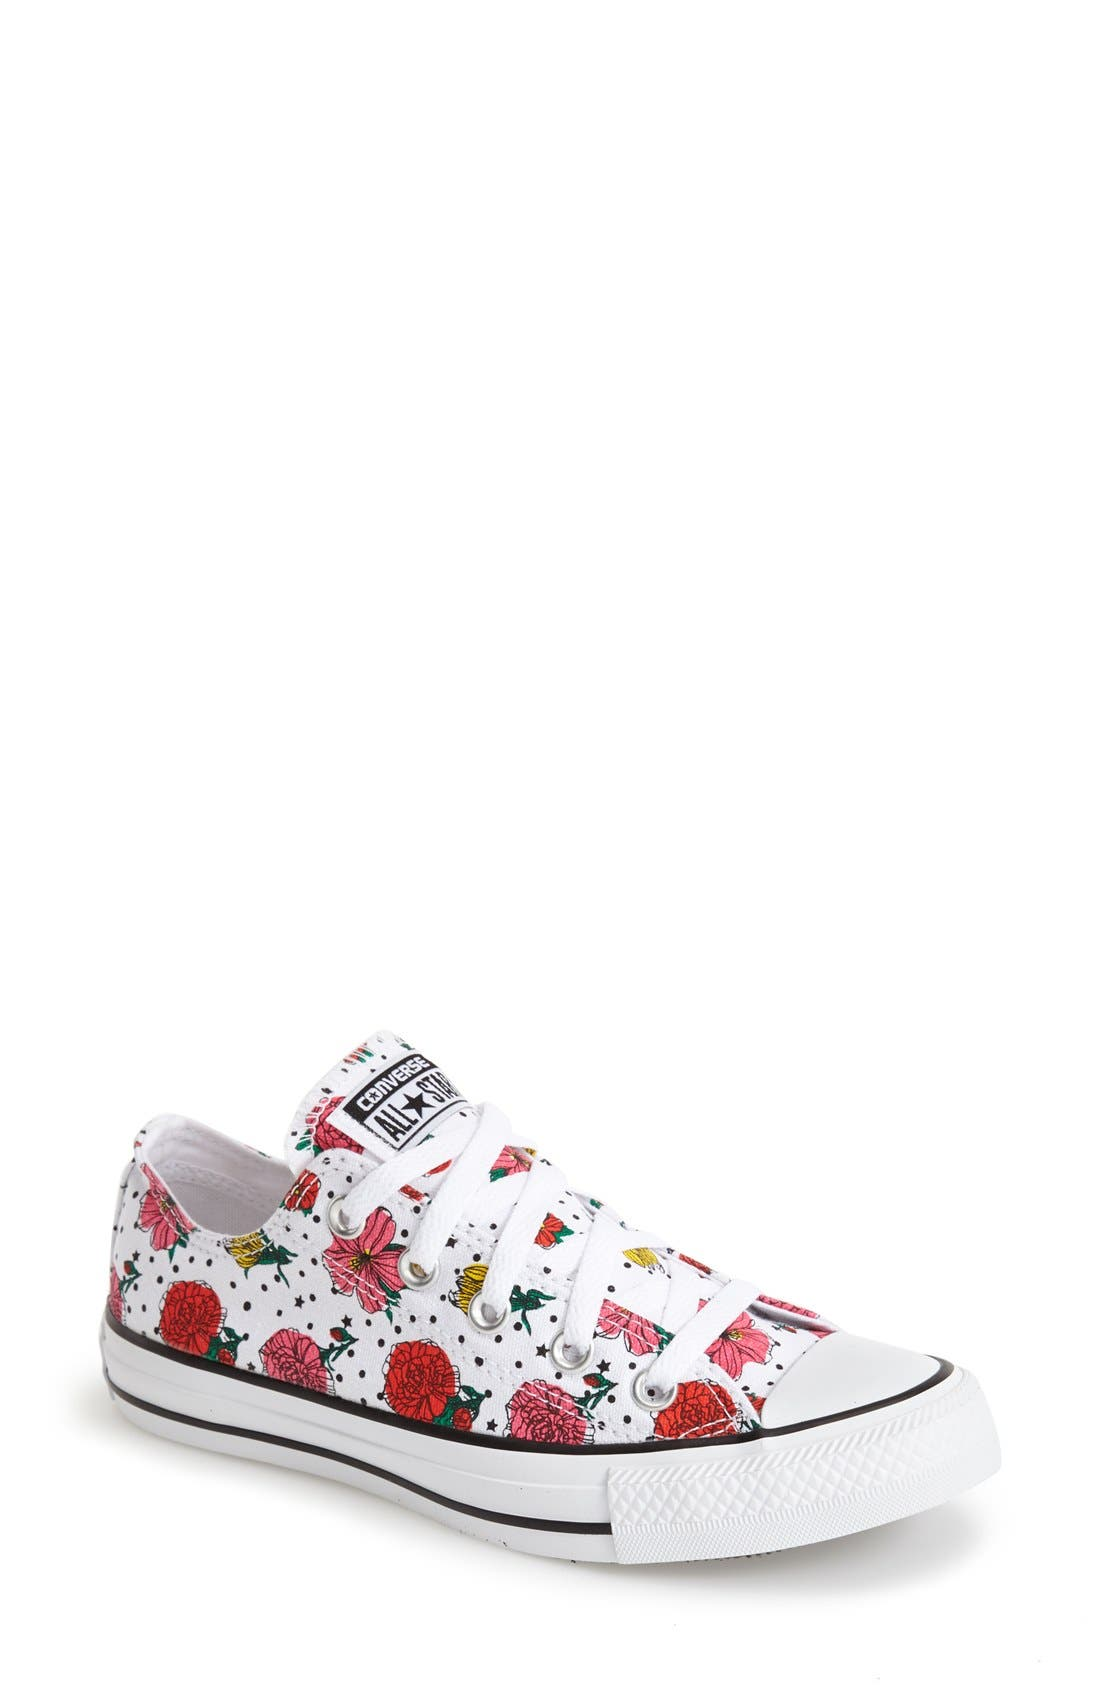 CONVERSE Chuck Taylor<sup>®</sup> All Star<sup>®</sup> Floral Polka Dot Low Top Sneaker, Main, color, 007